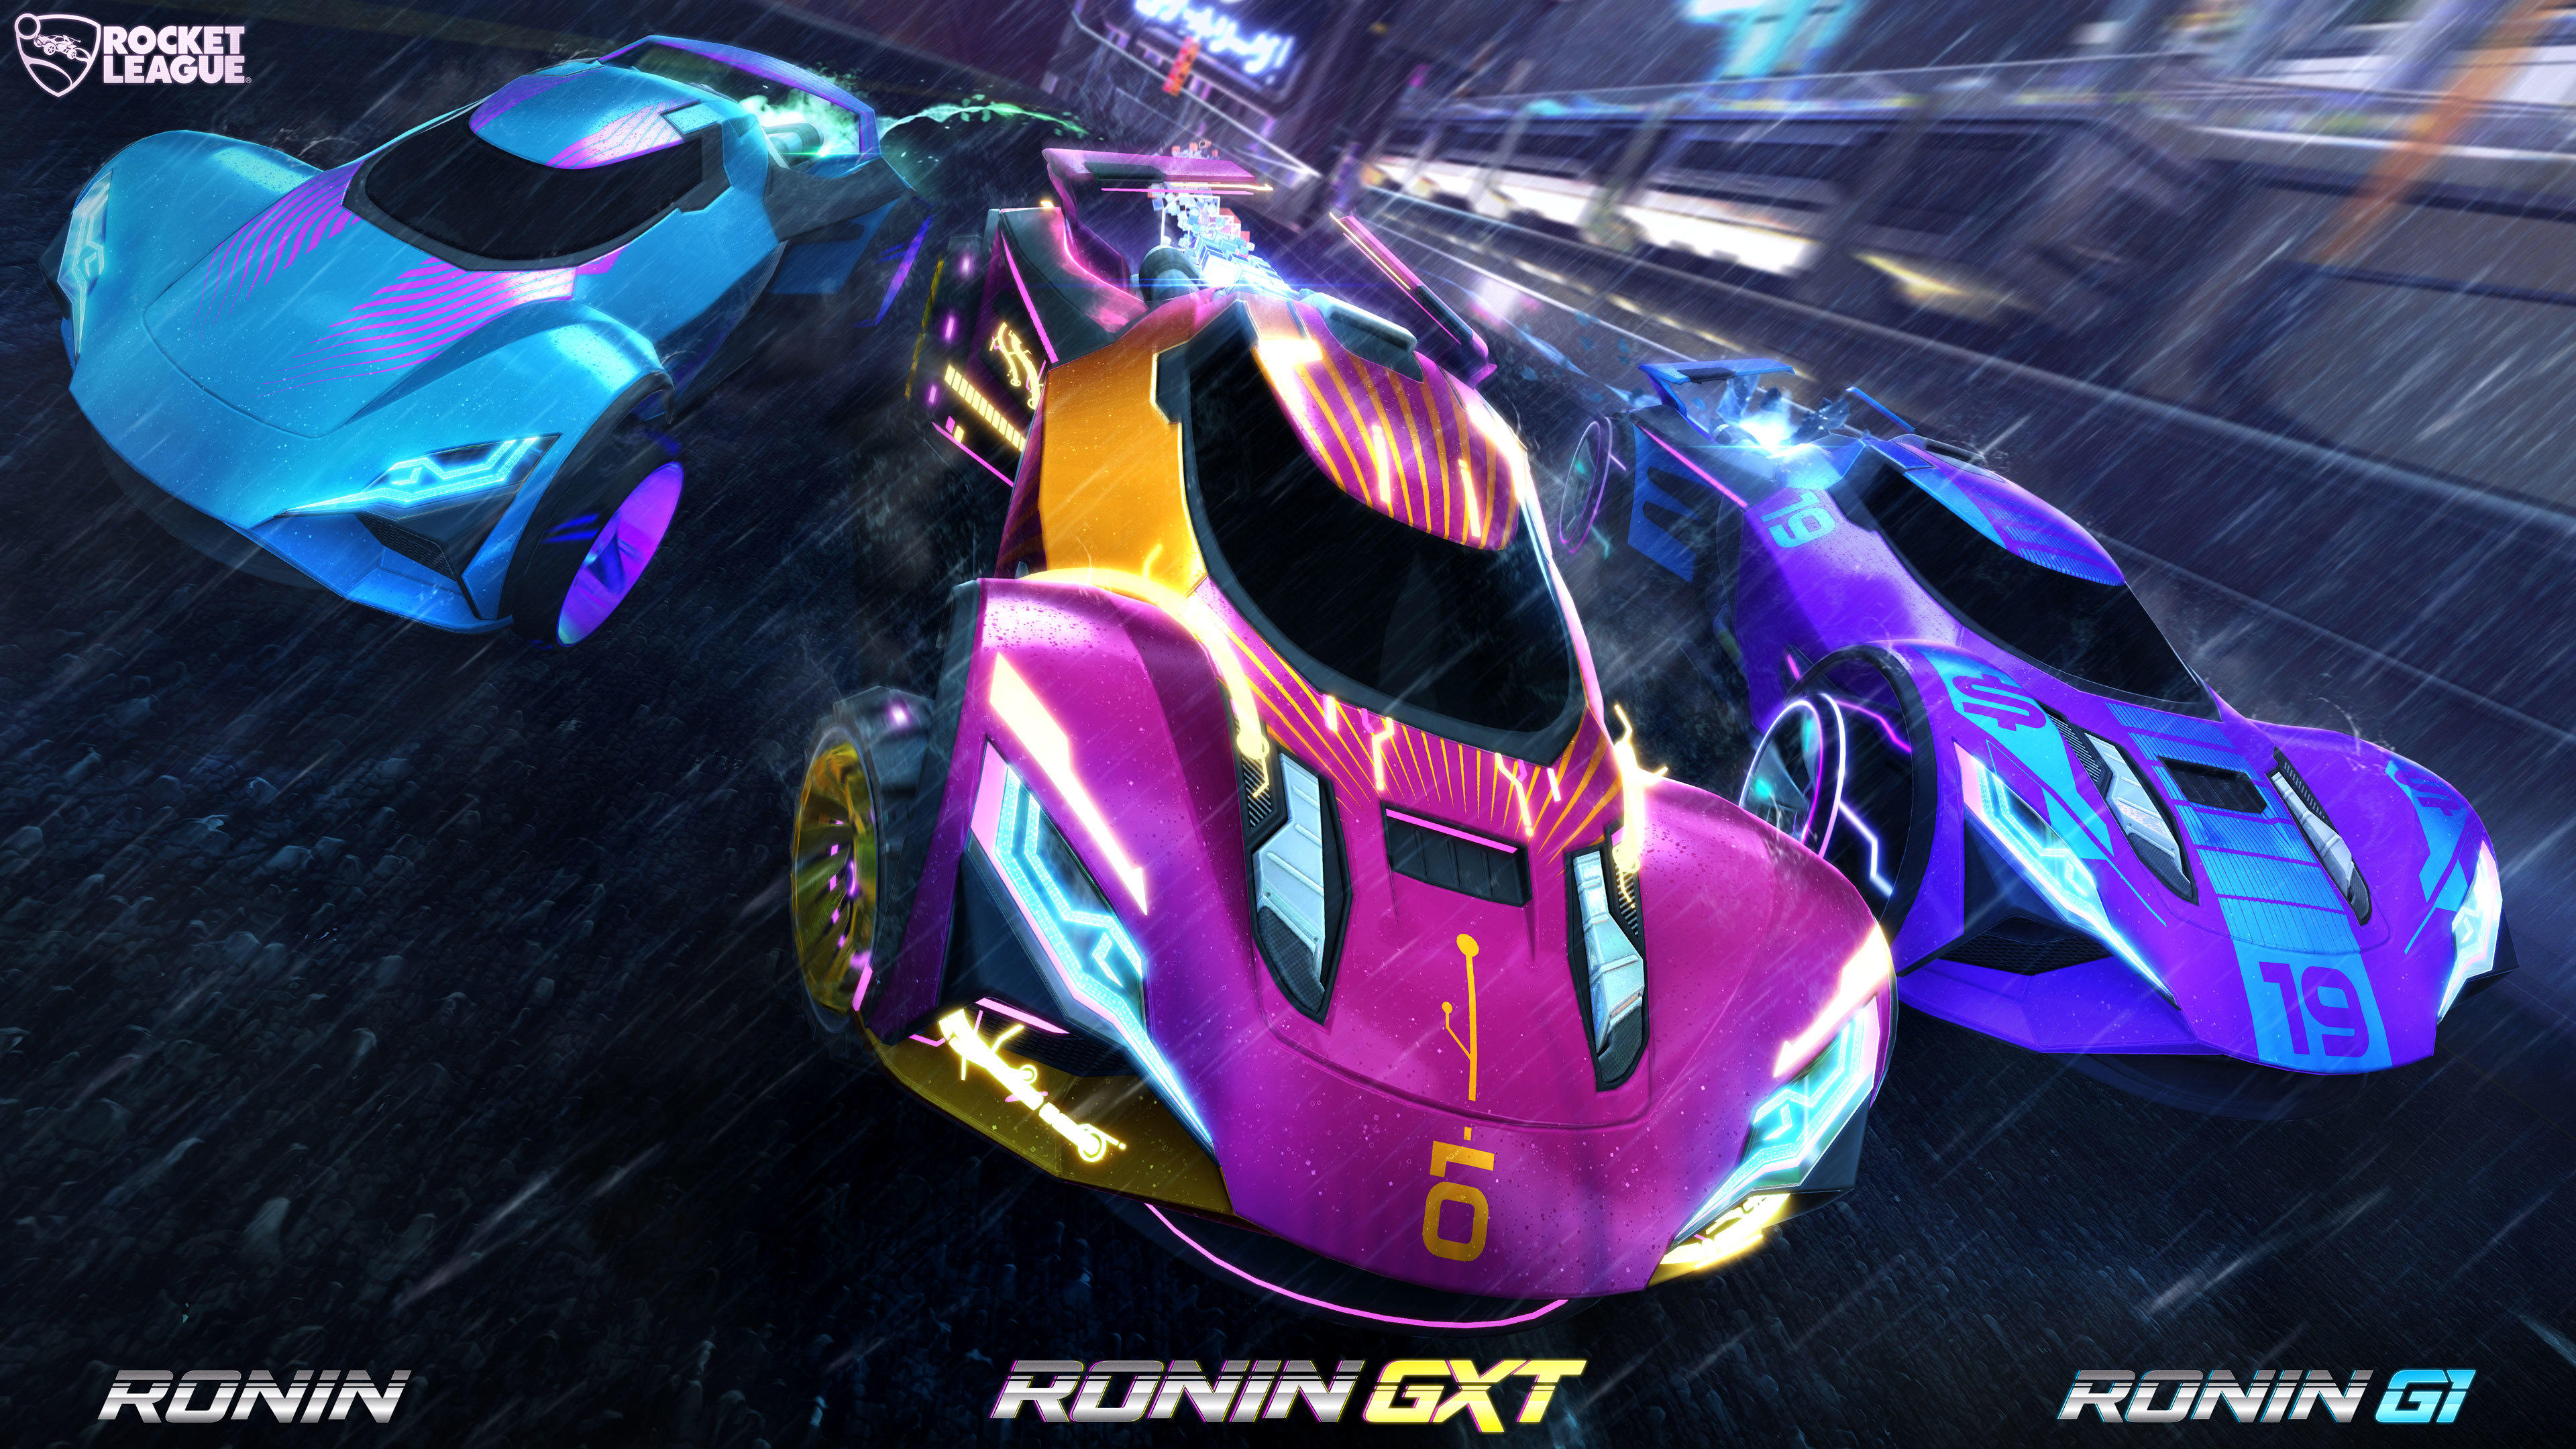 Rocket League kicks off Rocket Pass 6 with the Ronin supercar and a series of prizes